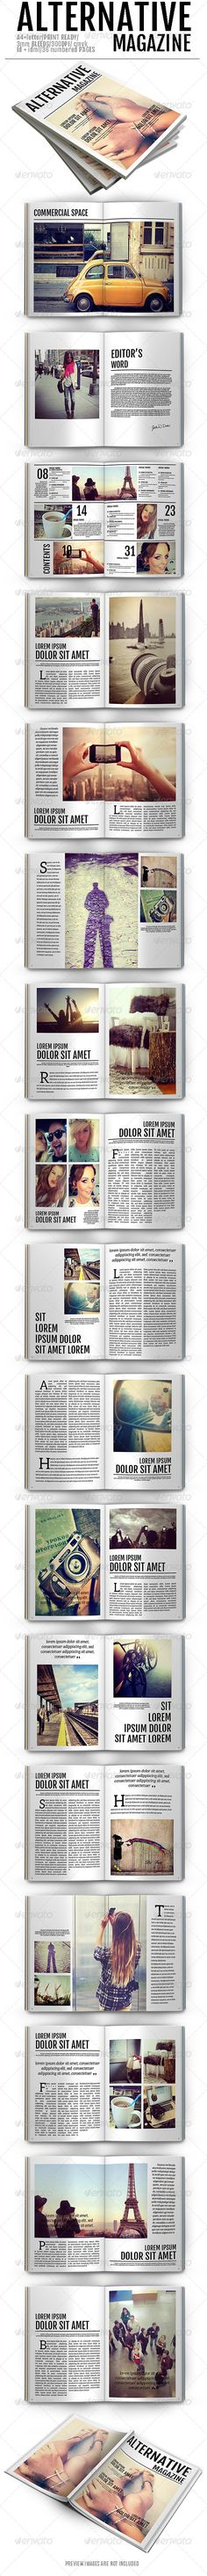 Alternative Magazine — InDesign INDD #old #colors • Available here → https://graphicriver.net/item/alternative-magazine/7855057?ref=pxcr